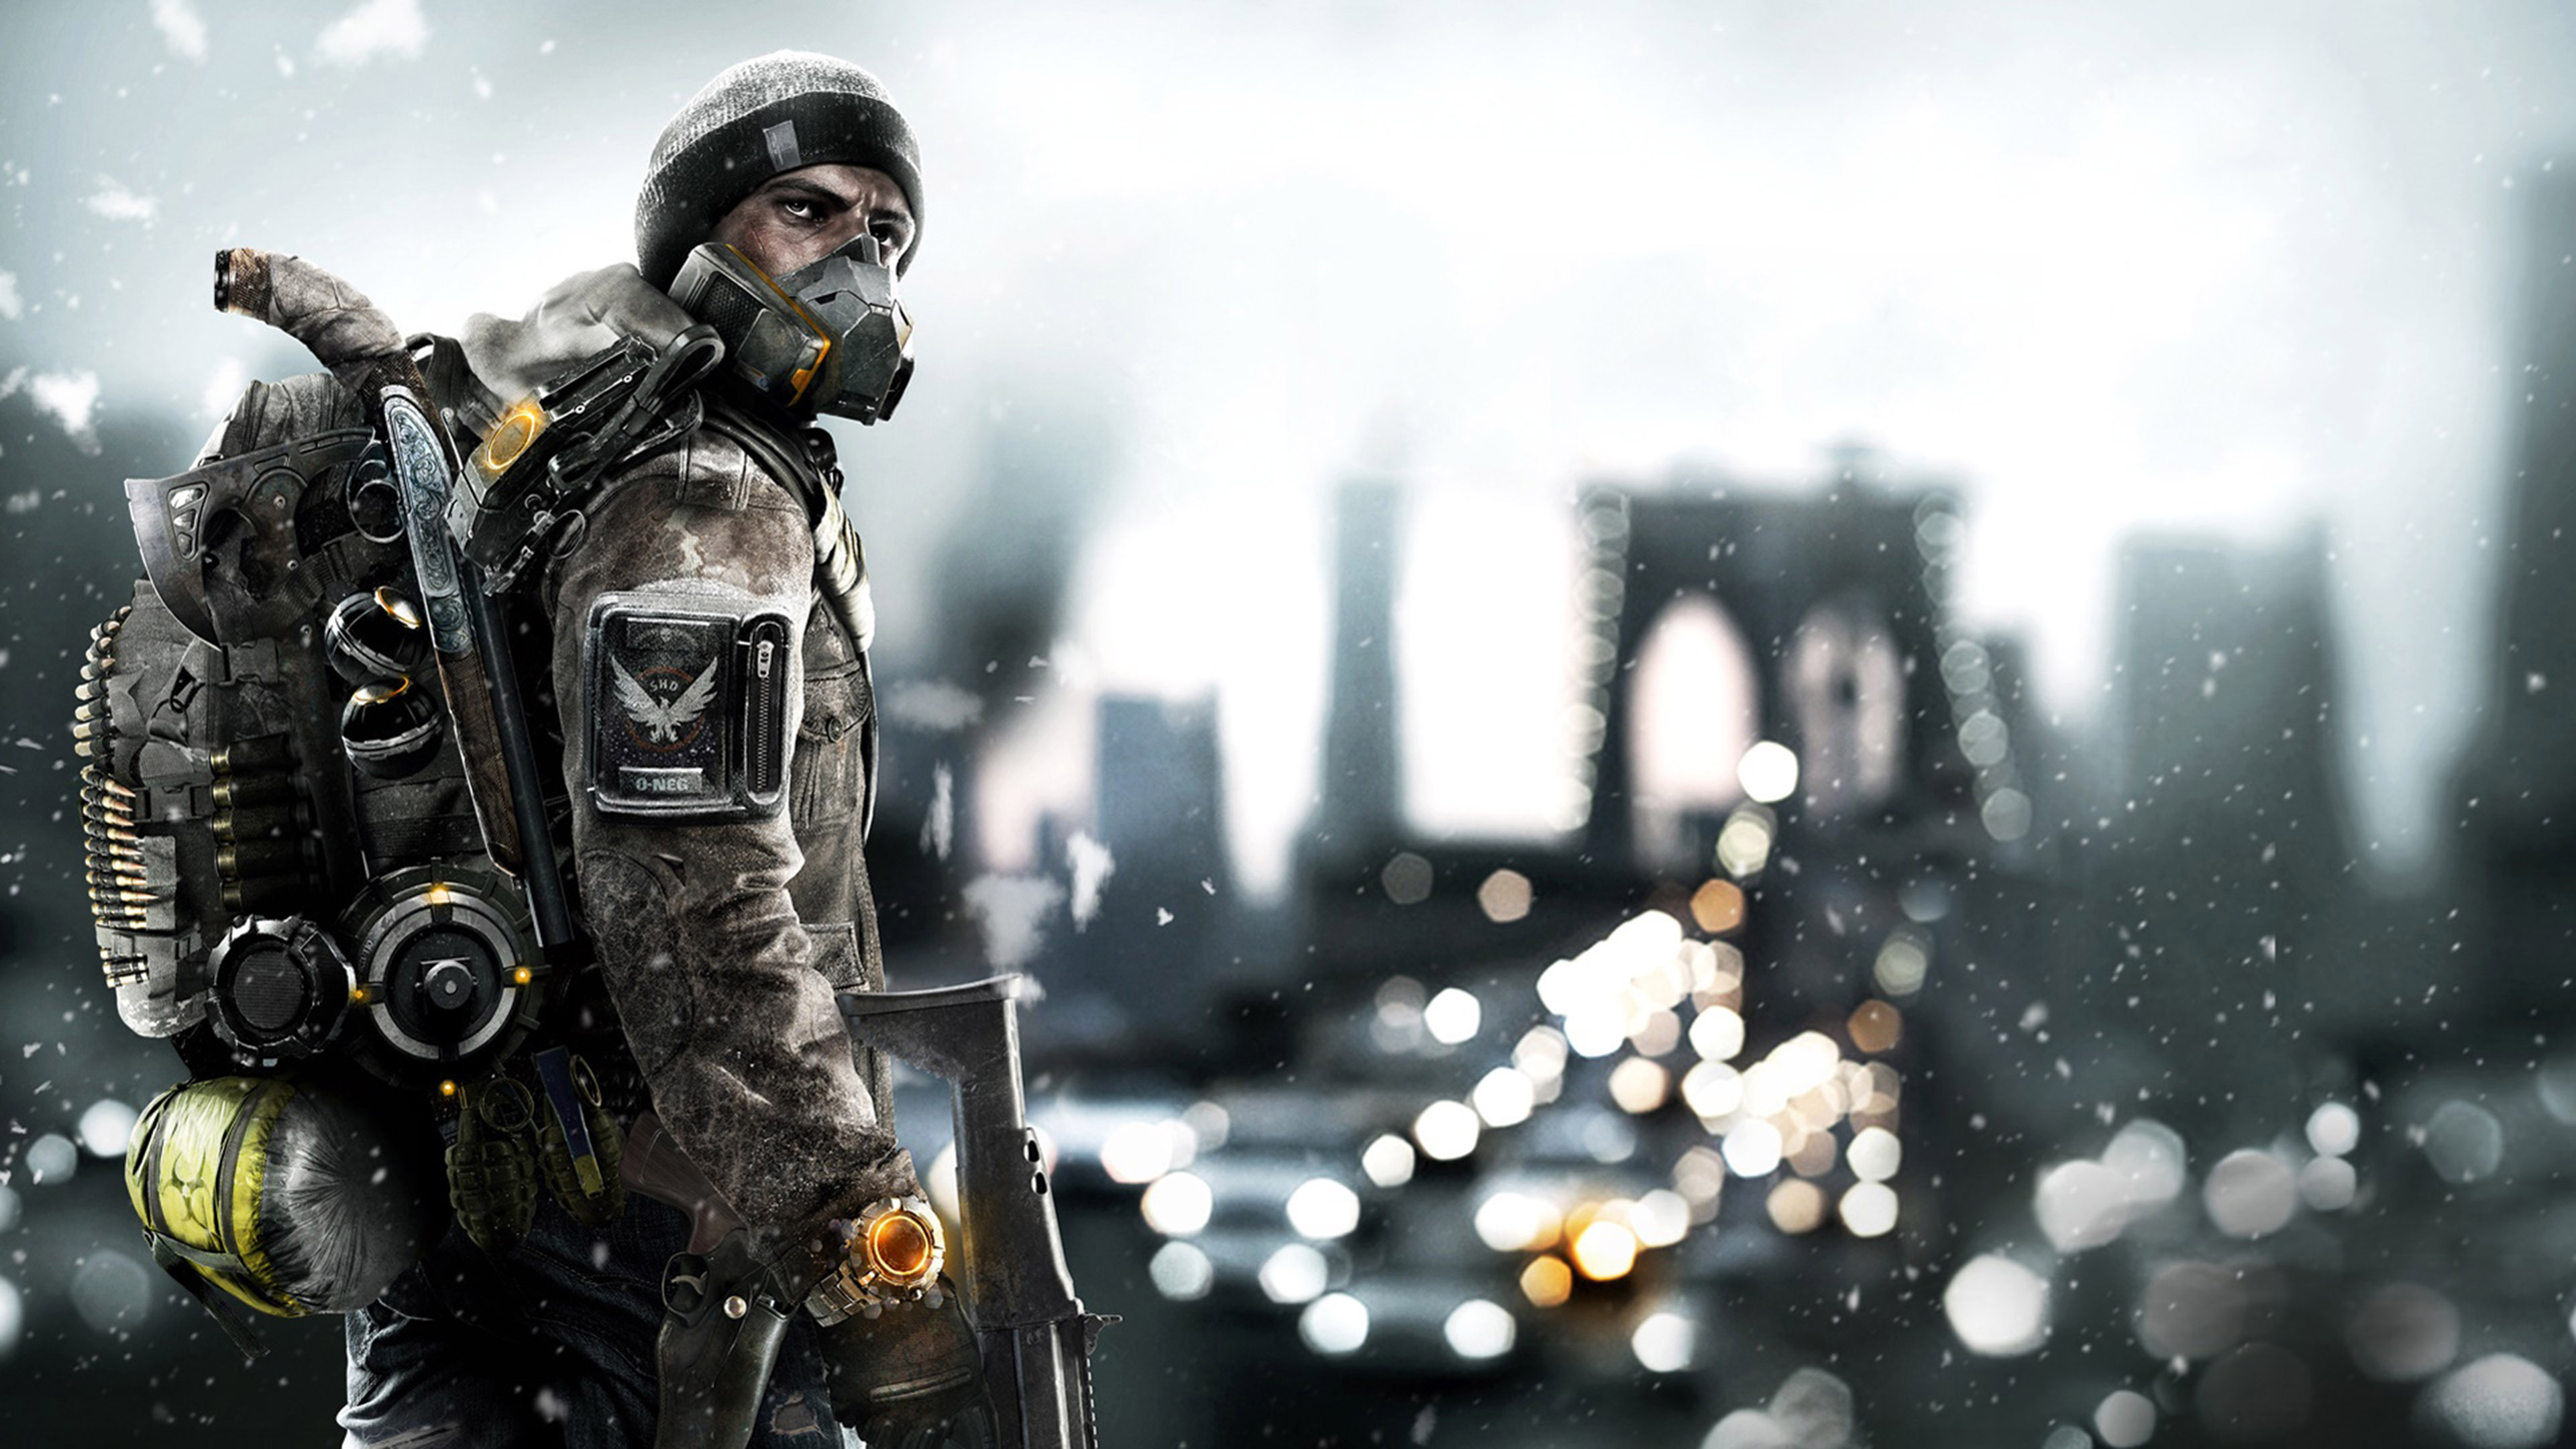 Tom Clancys The Division Season Pass Game Wallpaper WallpapersByte 3840x2160